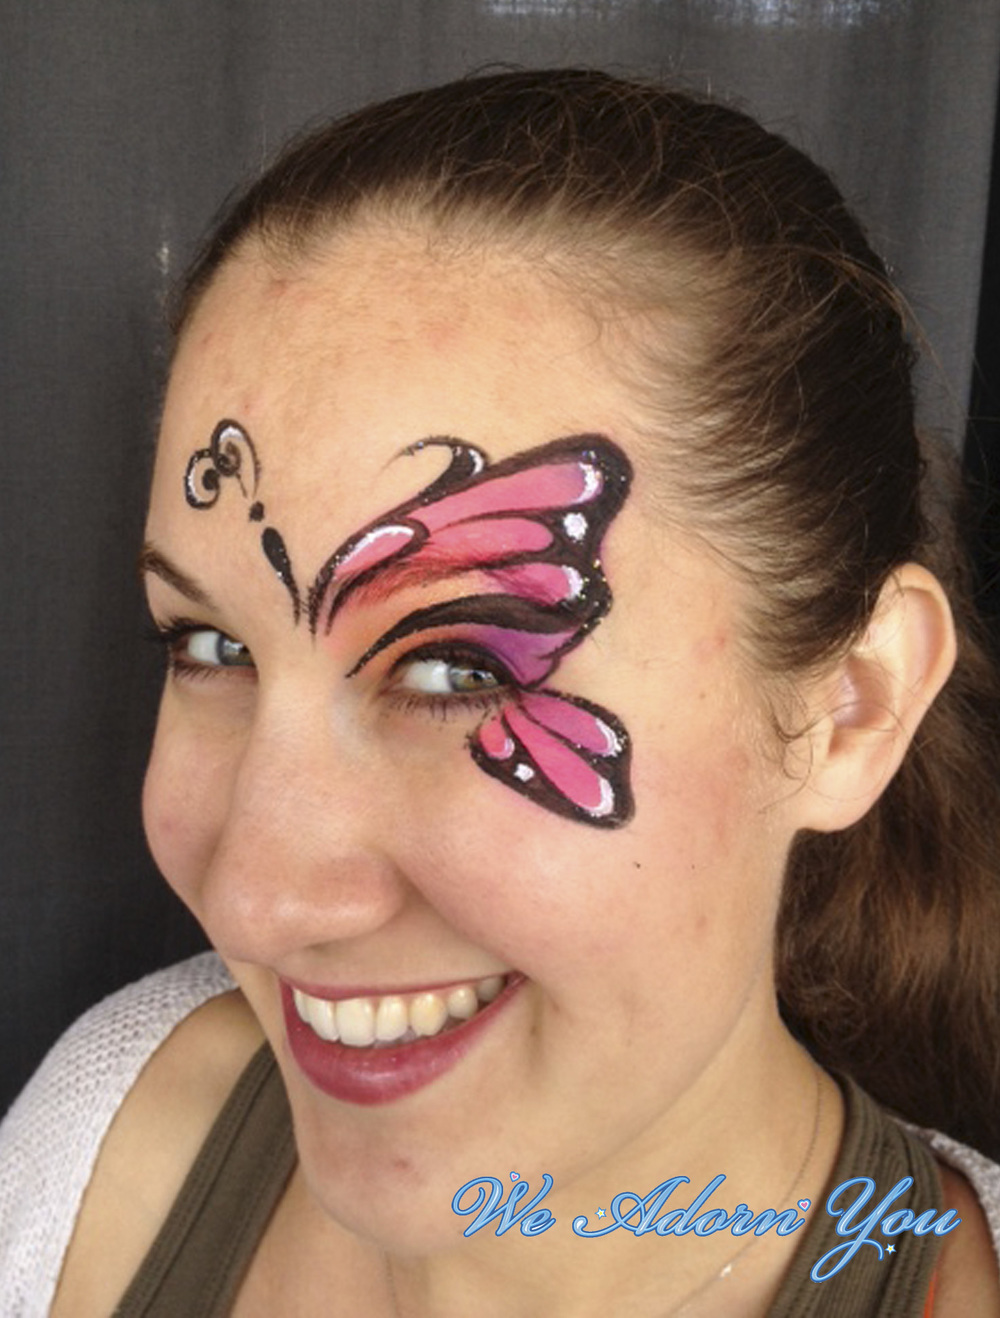 Face Painting Pink Butterfly - We Adorn You.jpg